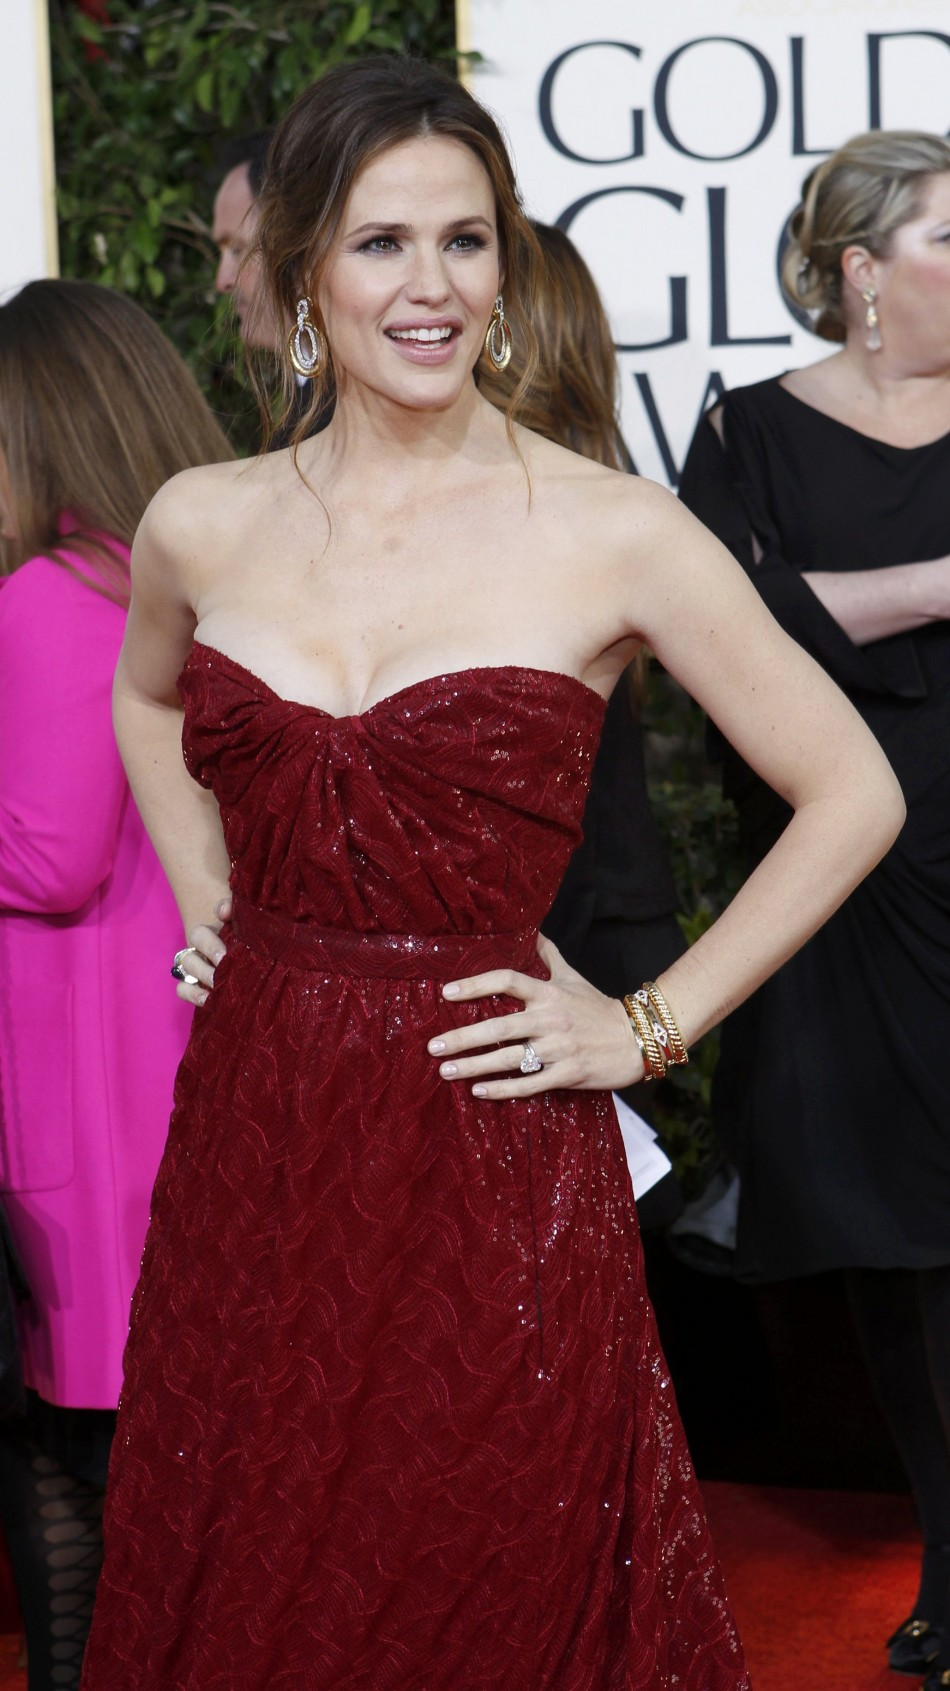 Actress Jennifer Garner arrives at the 70th annual Golden Globe Awards in Beverly Hills